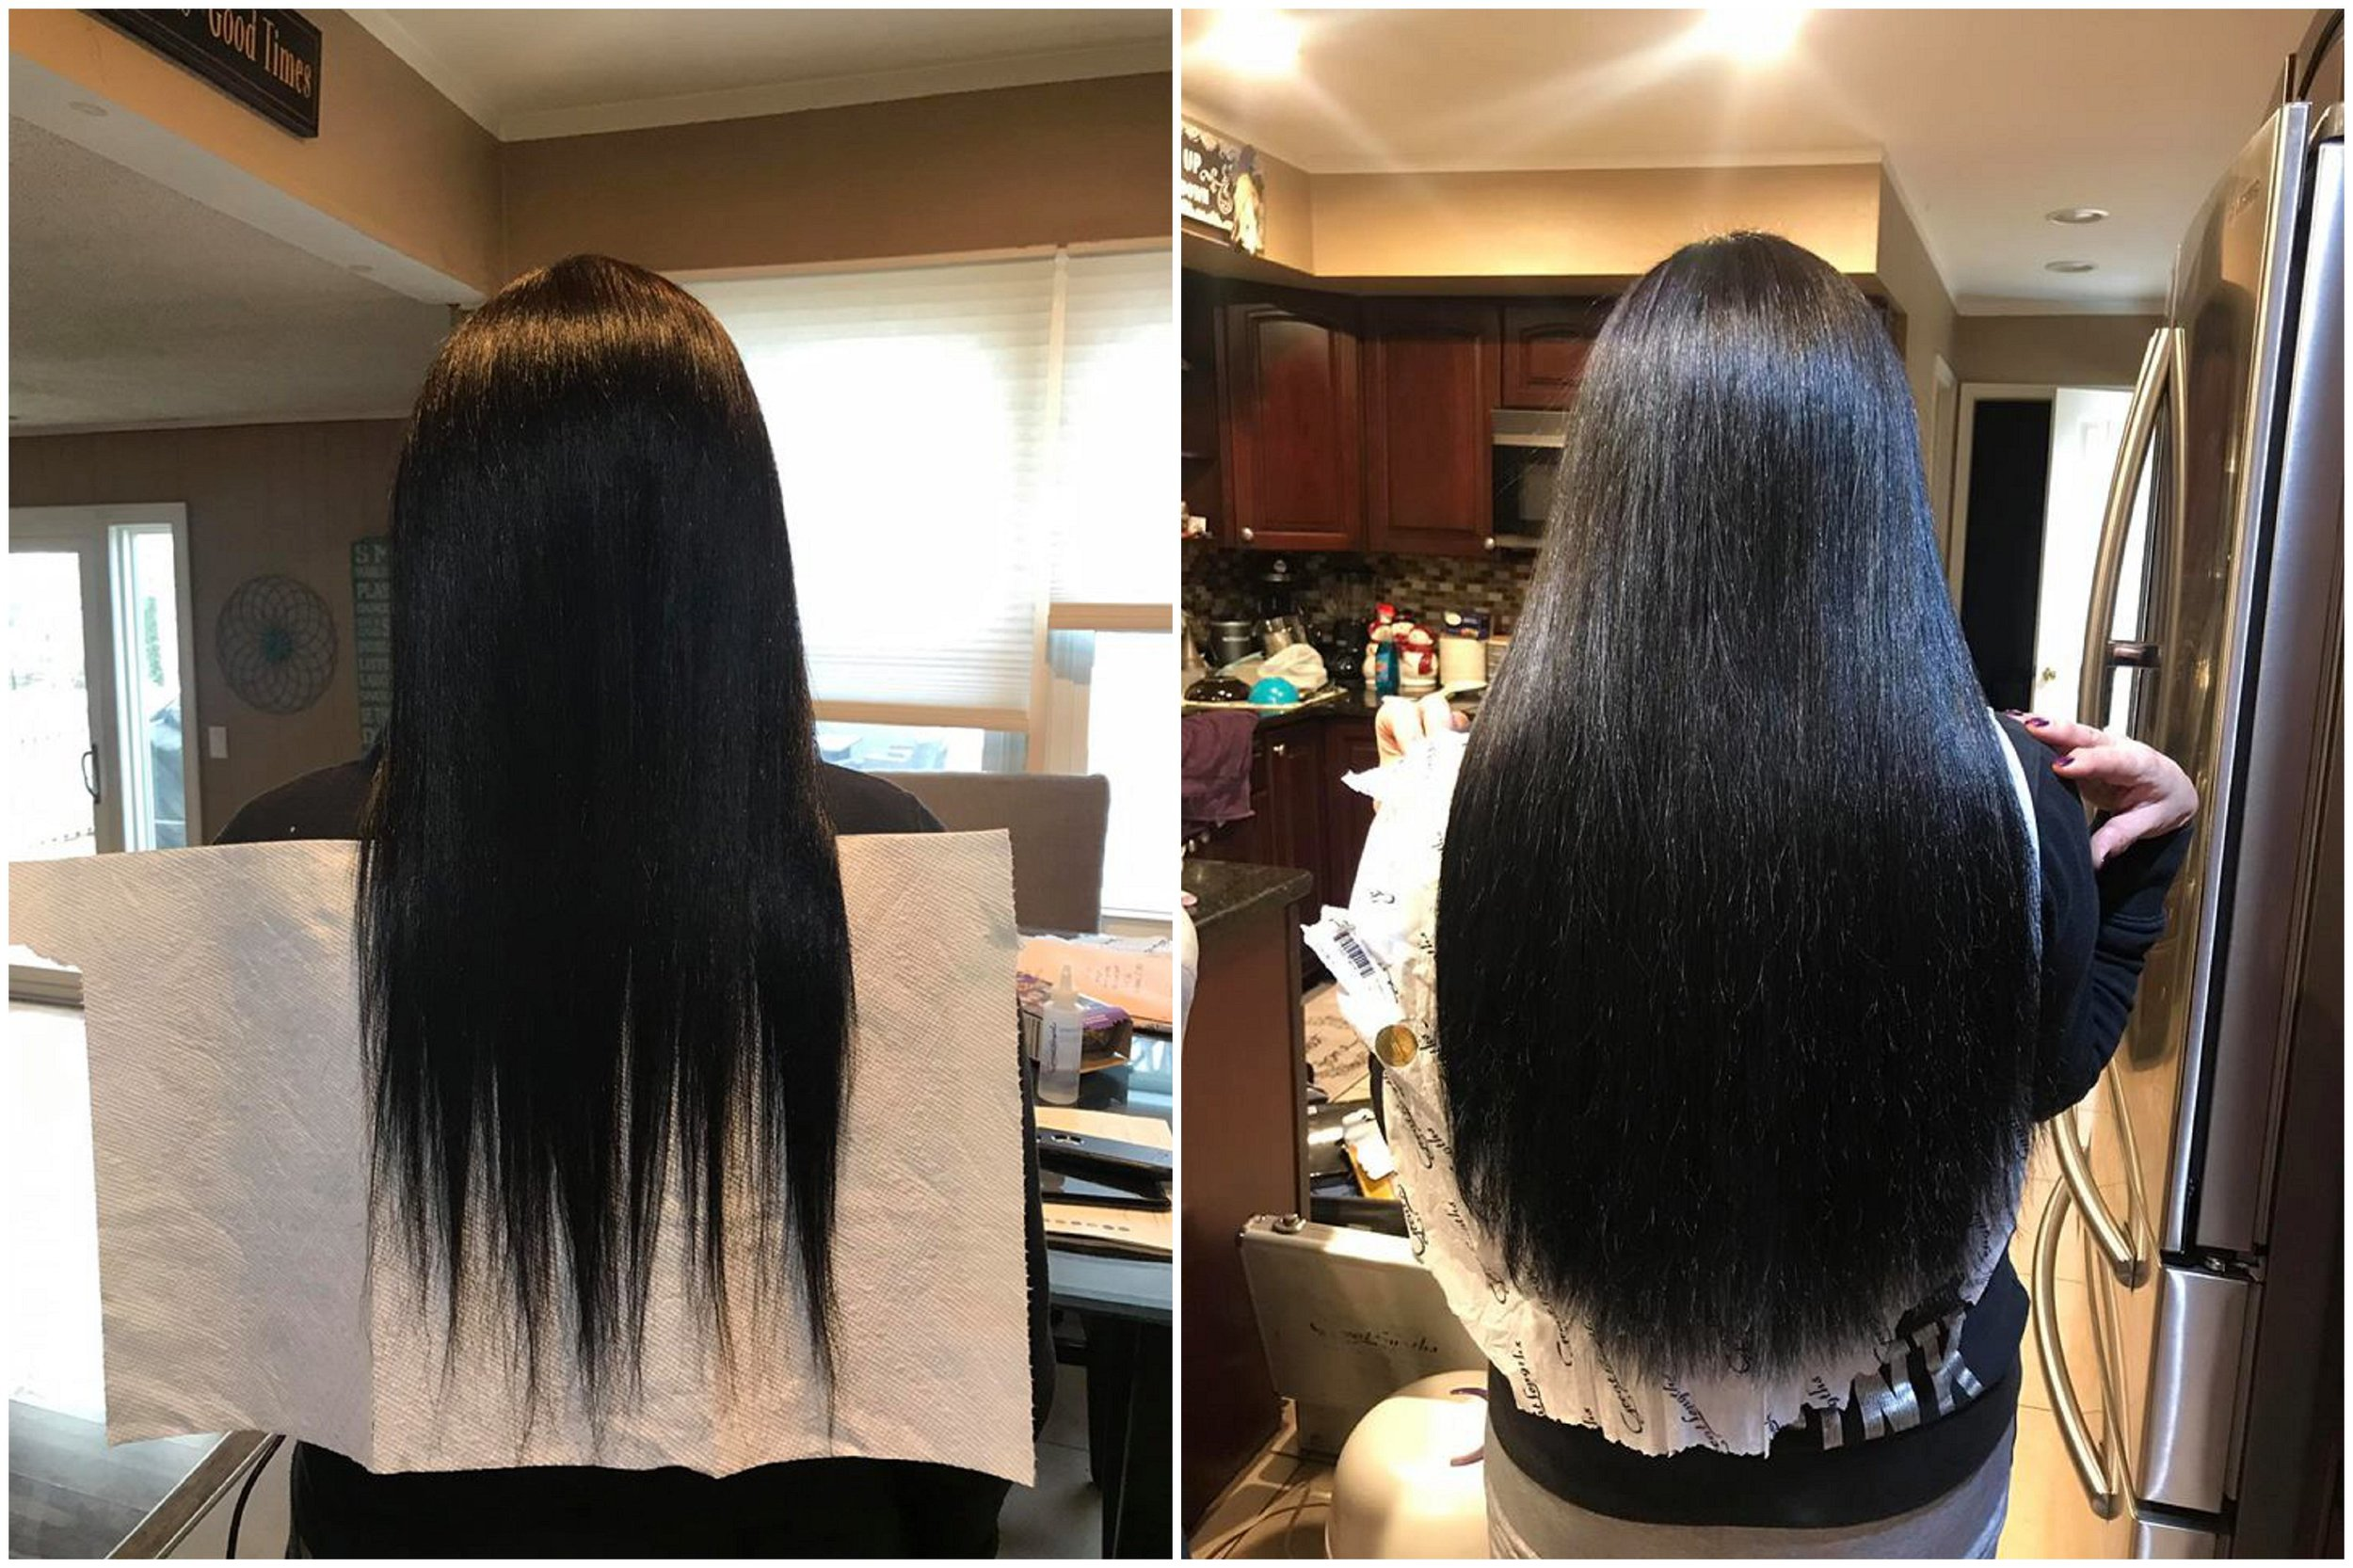 """Sheren (Extensions) - """"Excellent extensions I have been with her (Tiffany) for years.I always have the best experience and get tons of compliments on my hair.She comes to my house which is so convenient and her work is excellent."""""""